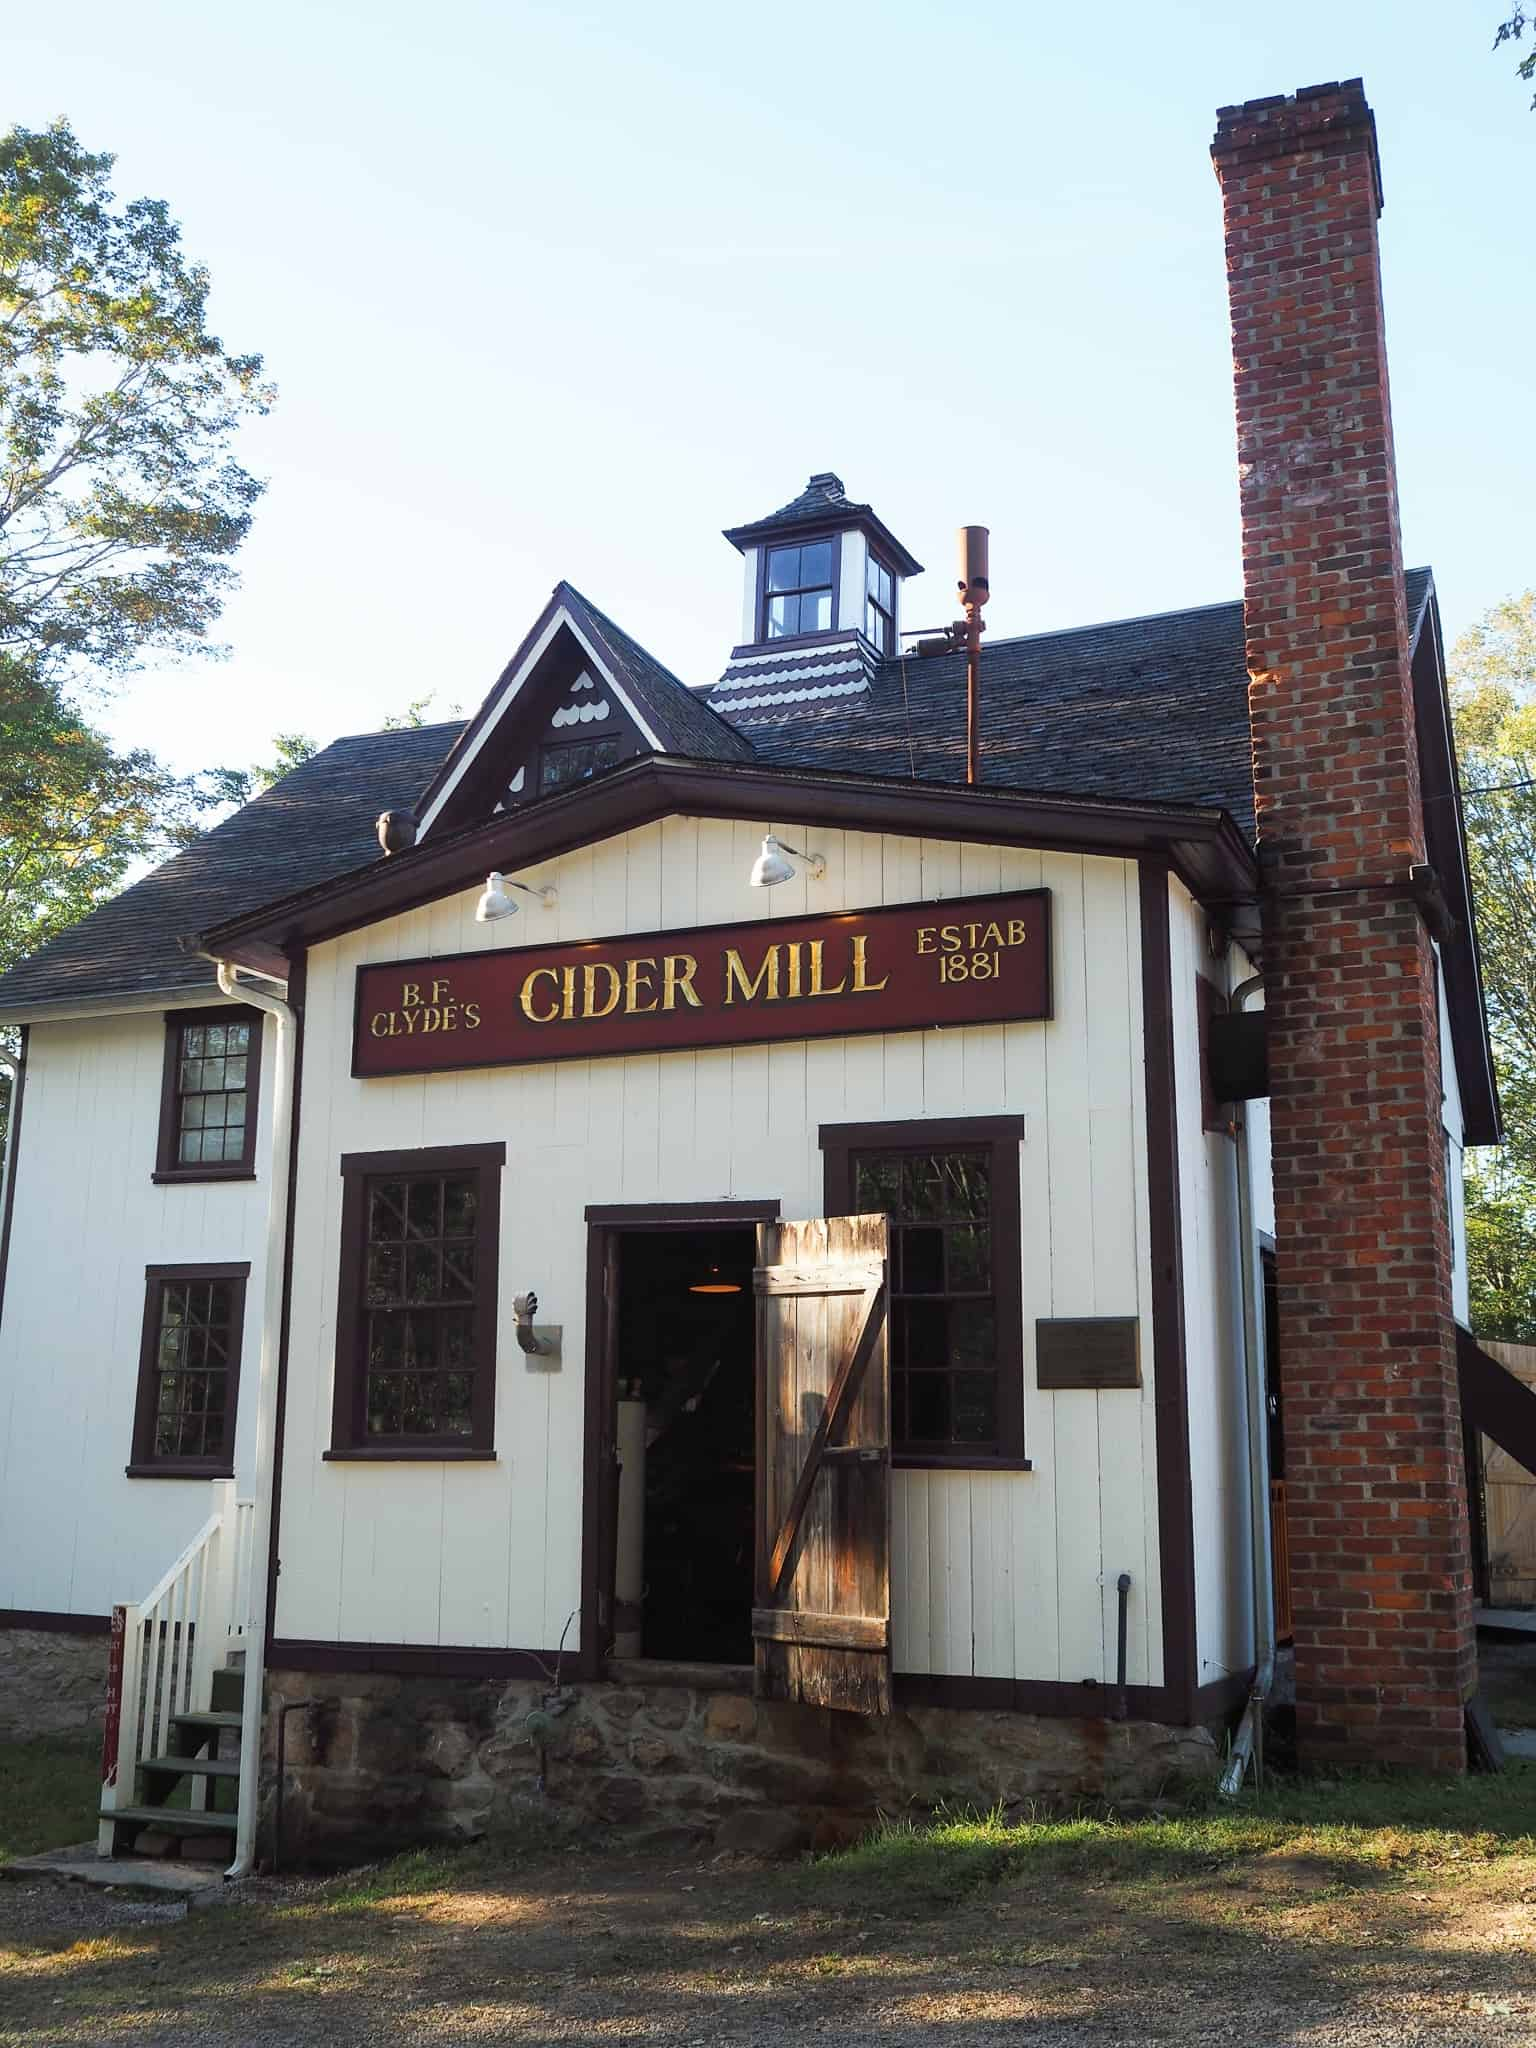 B. F. Clydes Cider Mill is the oldest steam powdered cider mill in the United States and has been operating since 1881. Clydes is deemed a national historic landmark. During the weekday you can get a glimpse into the old mill. During the weekends, however, there are apple cider demonstrations were you can able to walk into the mill and view the steam powered engine in process.